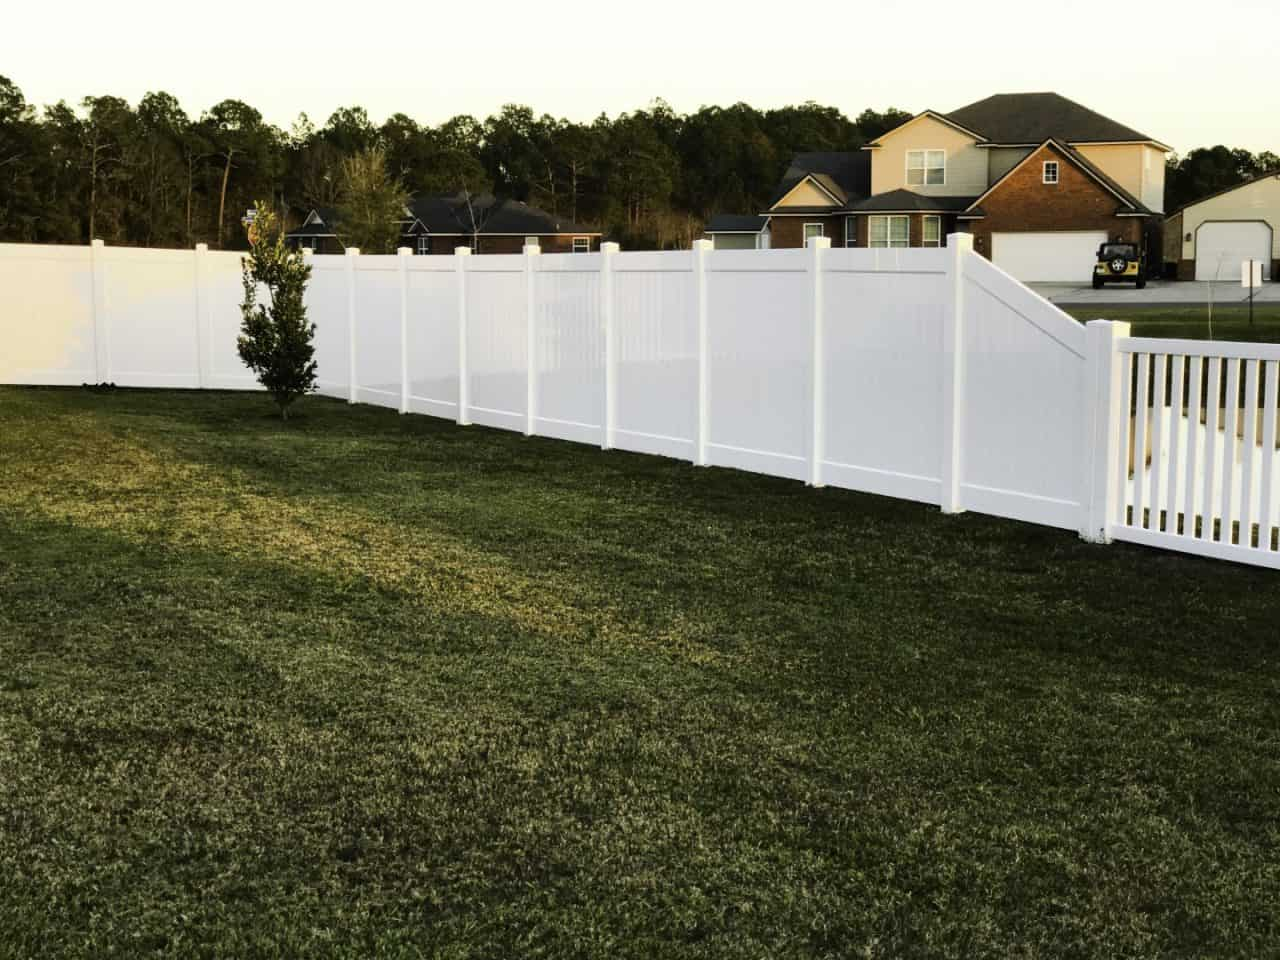 https://www.superiorfenceandrail.com/wp-content/uploads/2020/02/Franklin-Tennessee-Fence-Company-with-Highest-Rating-1280x960.jpg